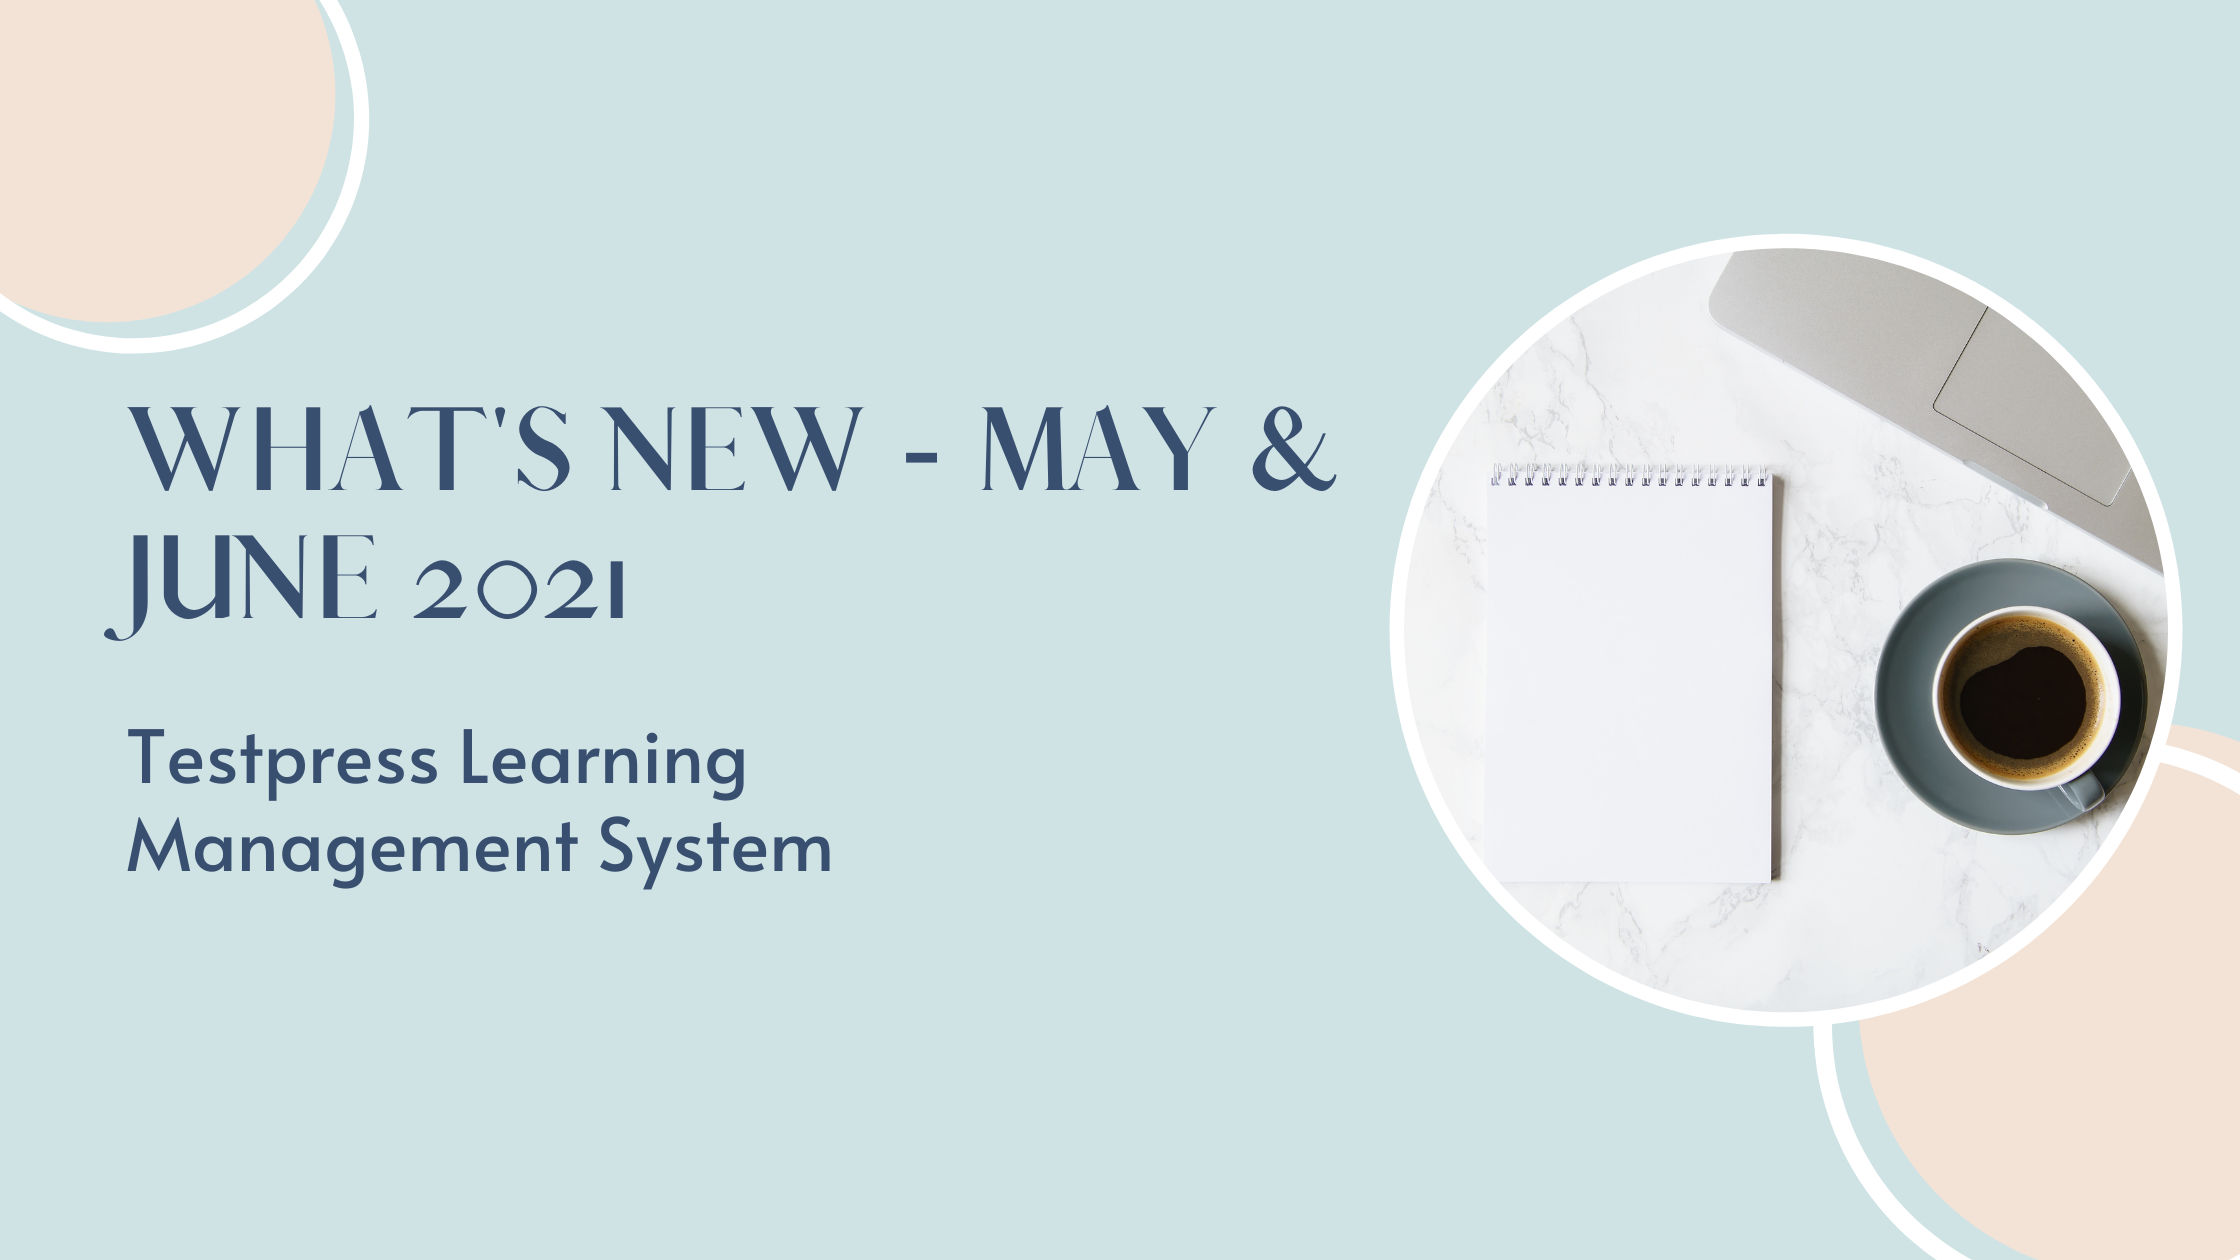 What's new in Testpress Learning Management System - May & June 2021